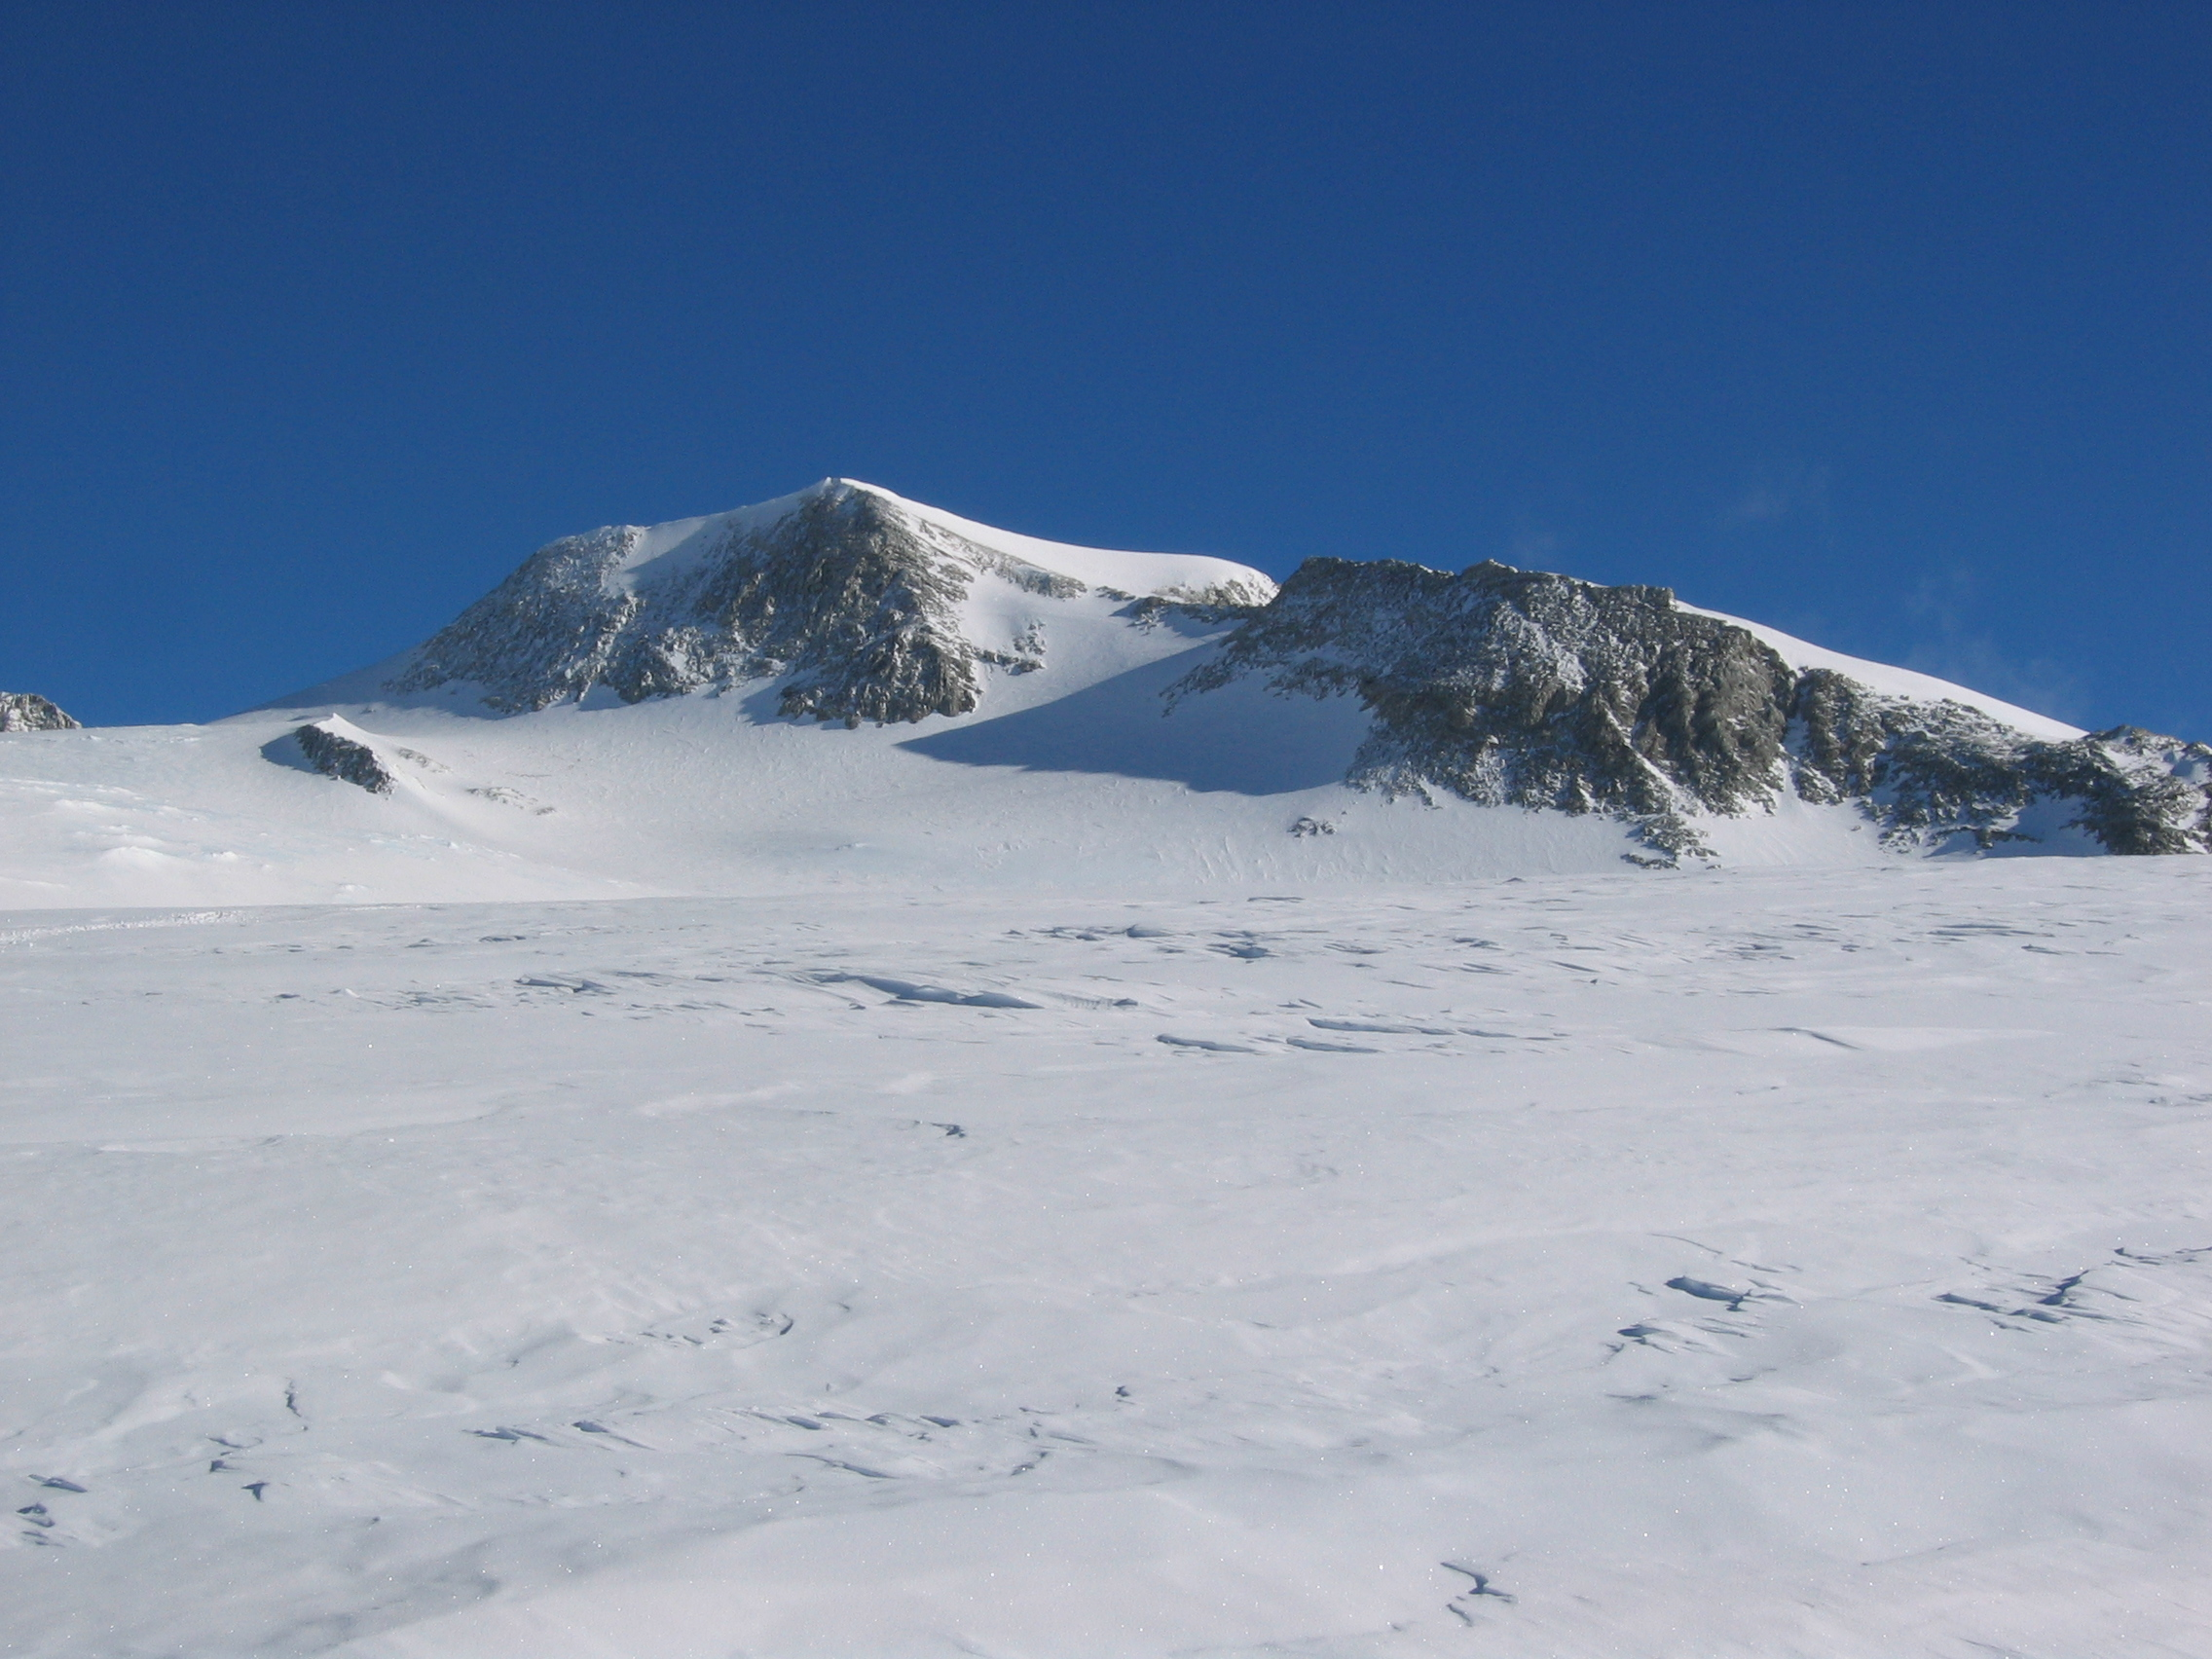 Looking up towards the summit of Vinson